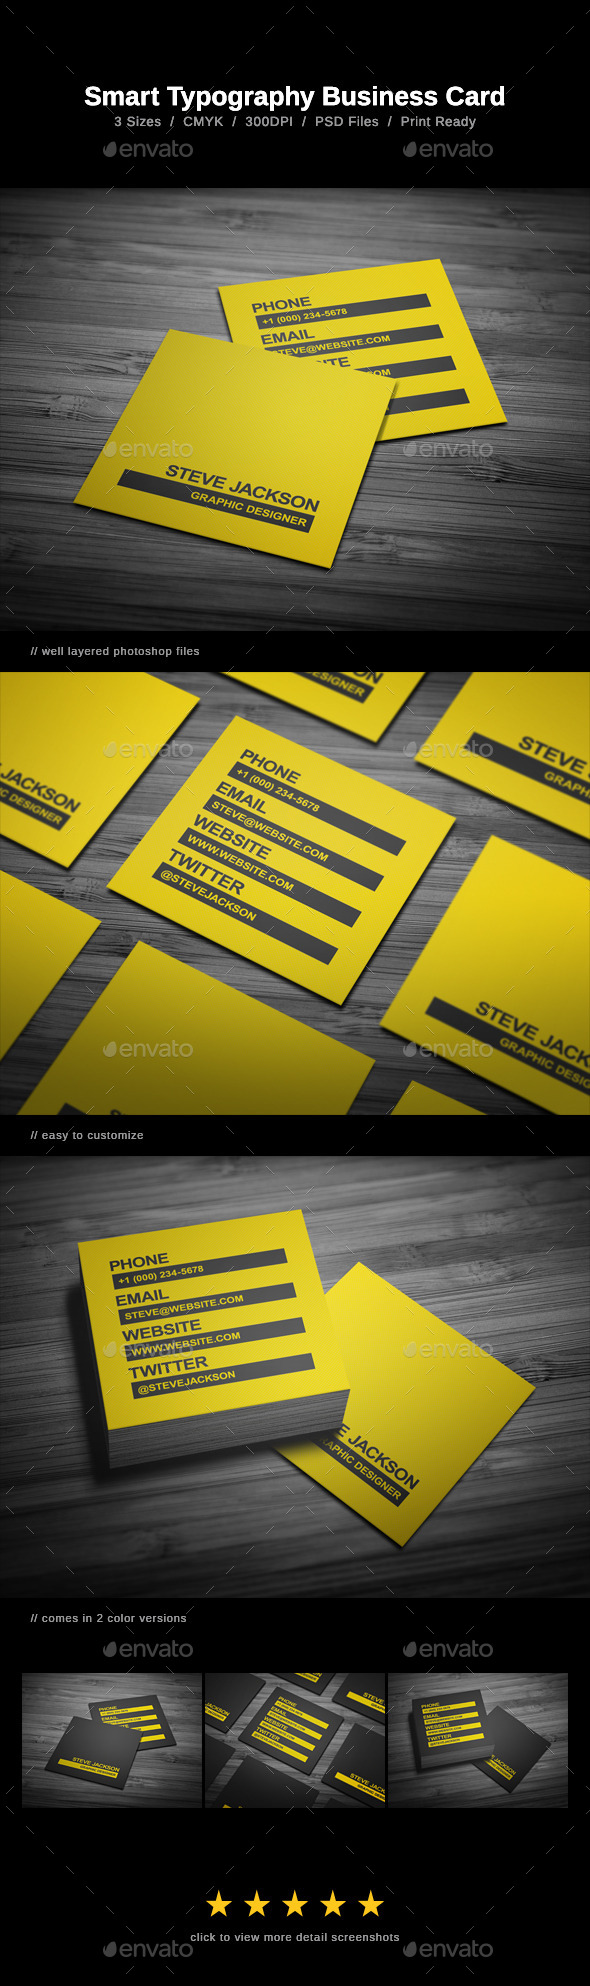 Smart Typography Business Card - Creative Business Cards